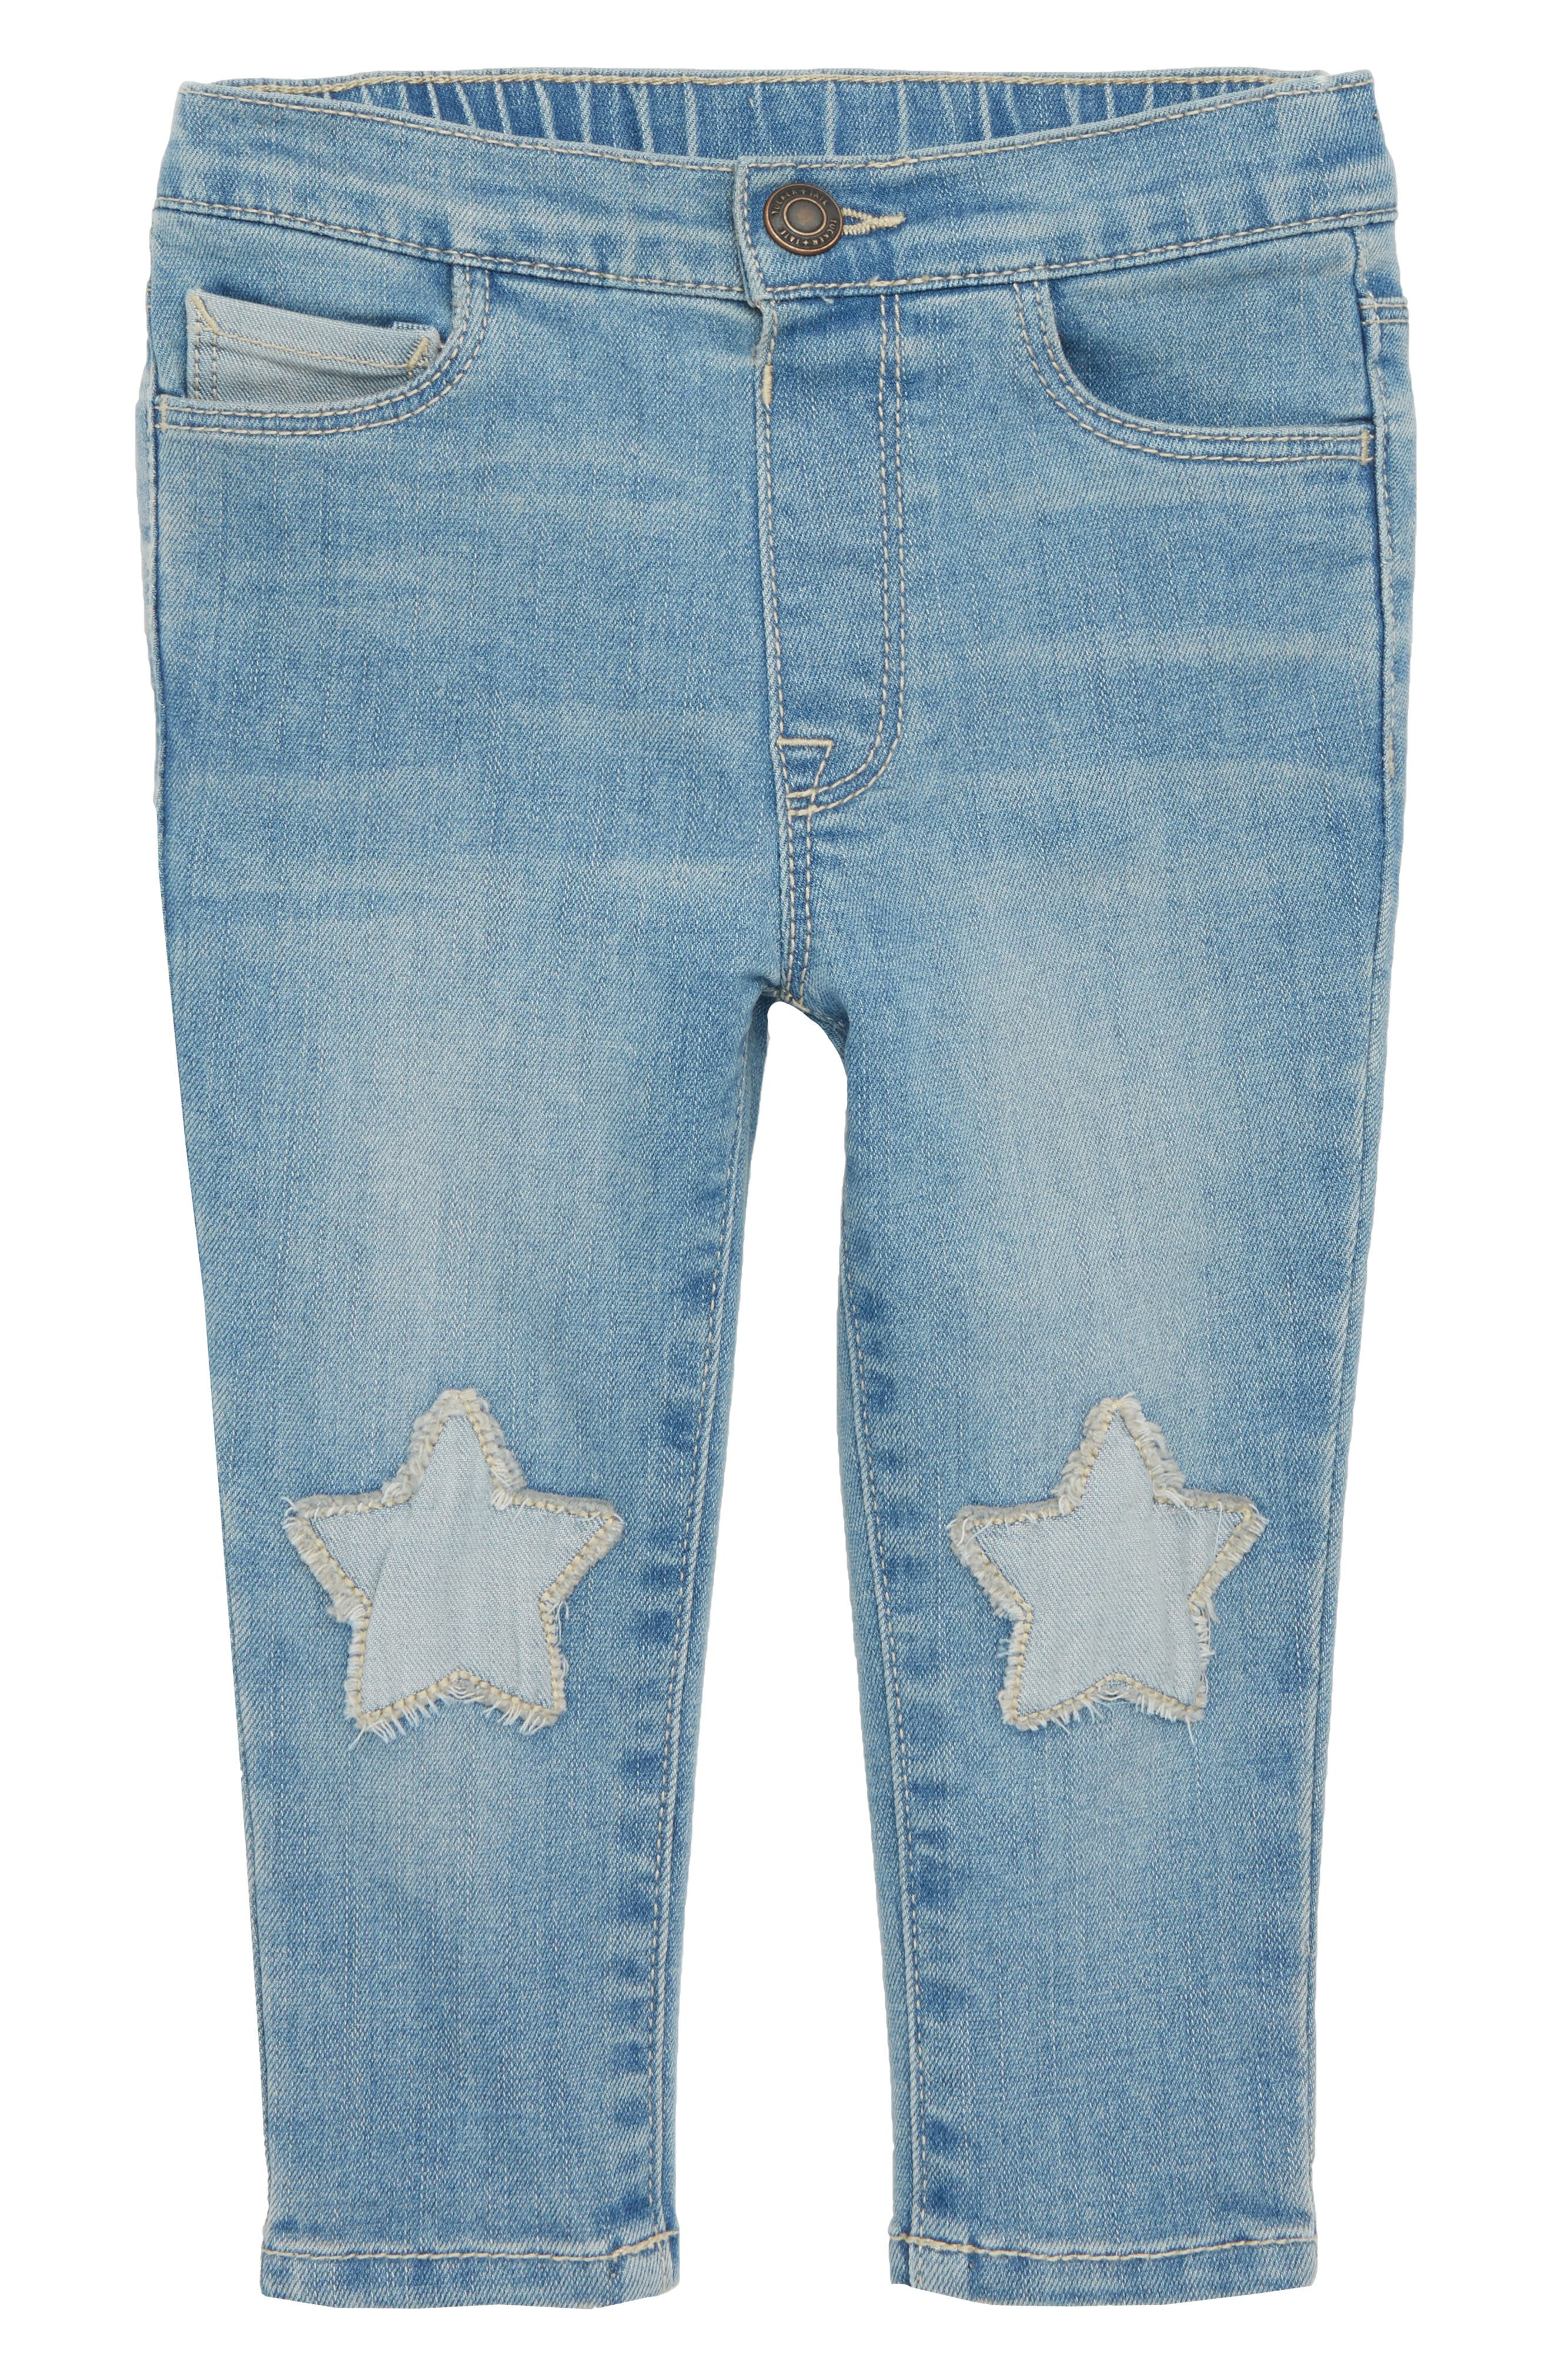 Star Patch Skinny Jeans,                             Main thumbnail 1, color,                             450